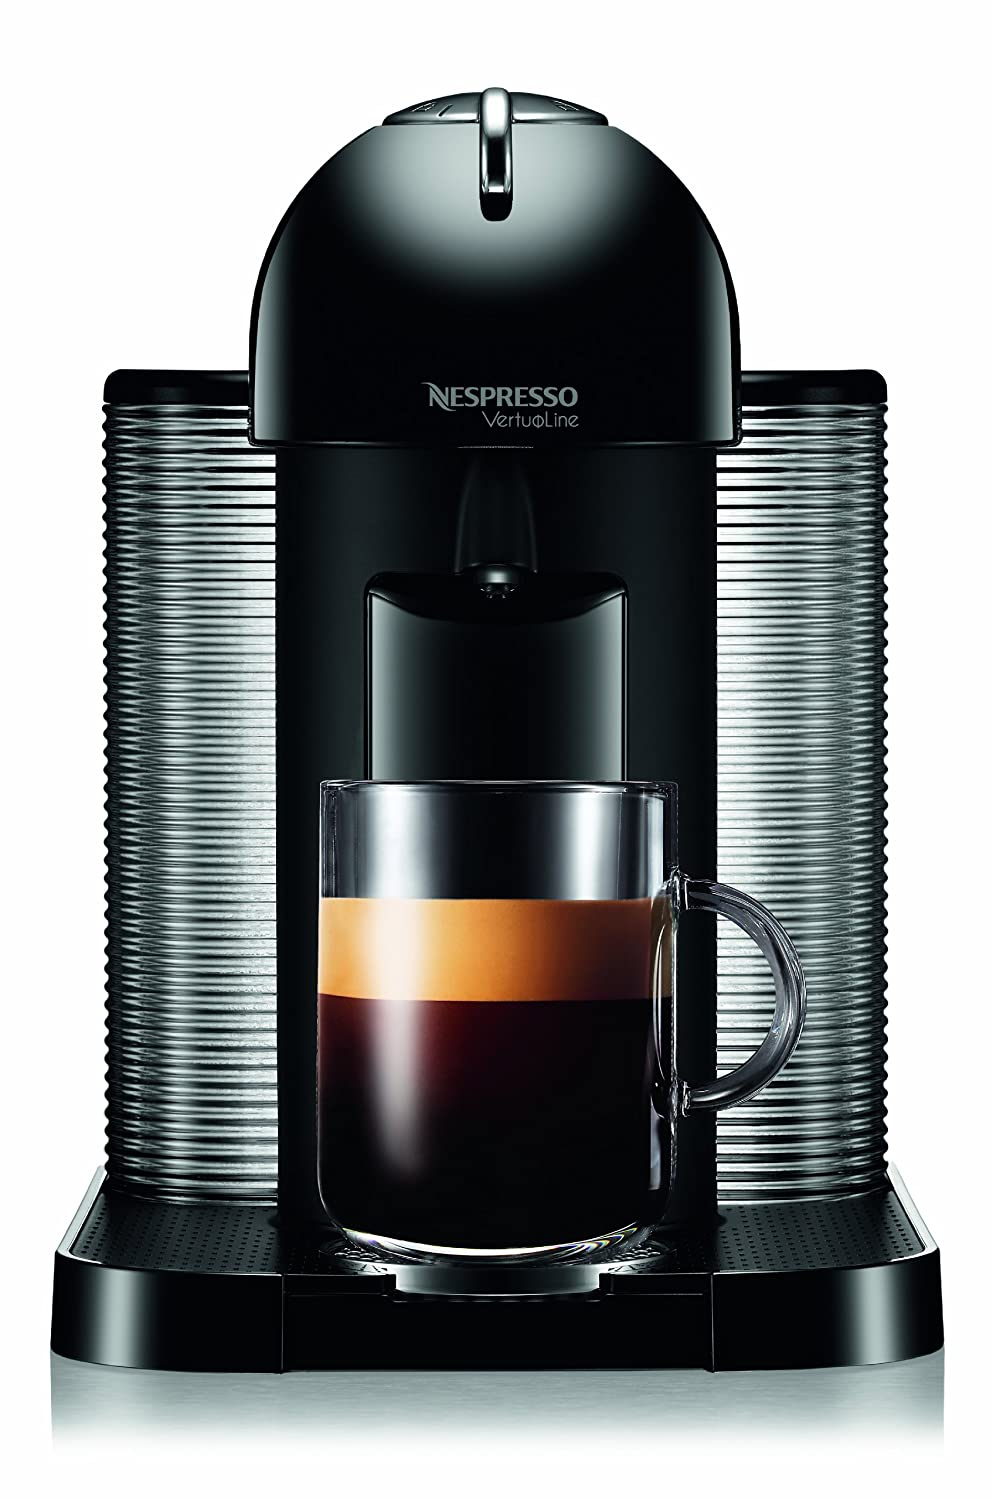 Coffee Maker Latte Reviews : Nespresso VertuoLine Review - Updated 2018